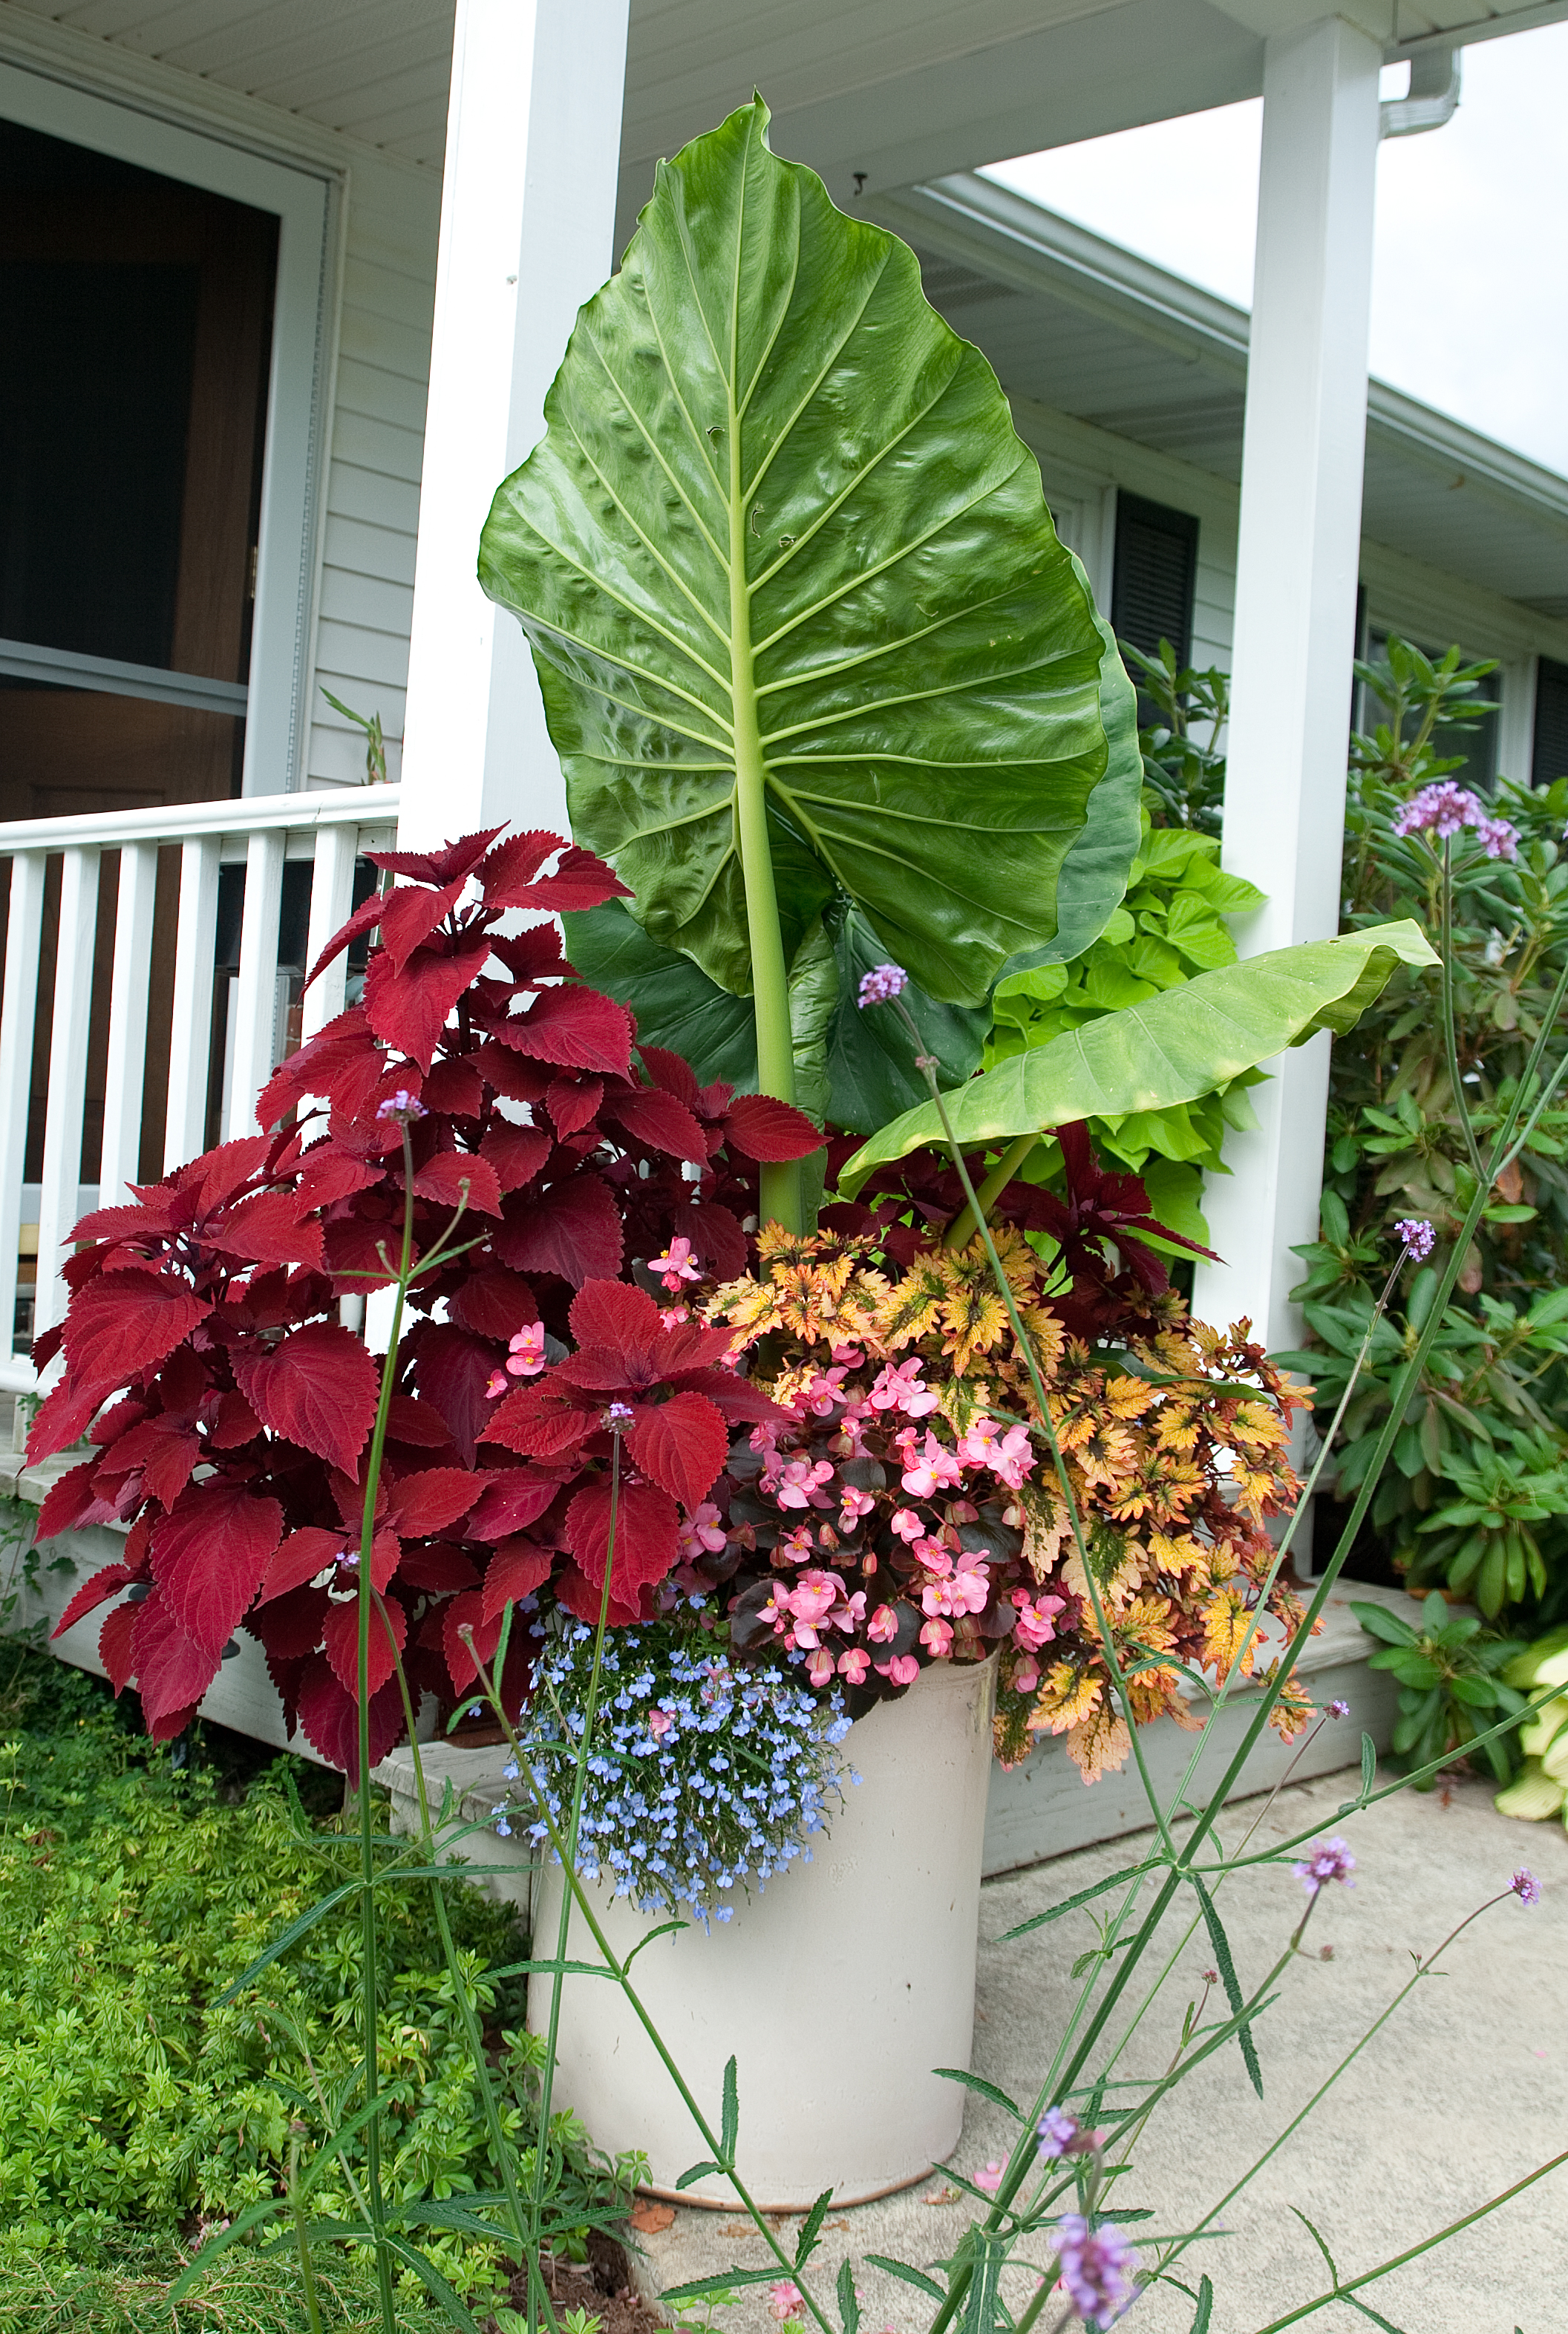 Tropical plants for Planting flowers in pots ideas